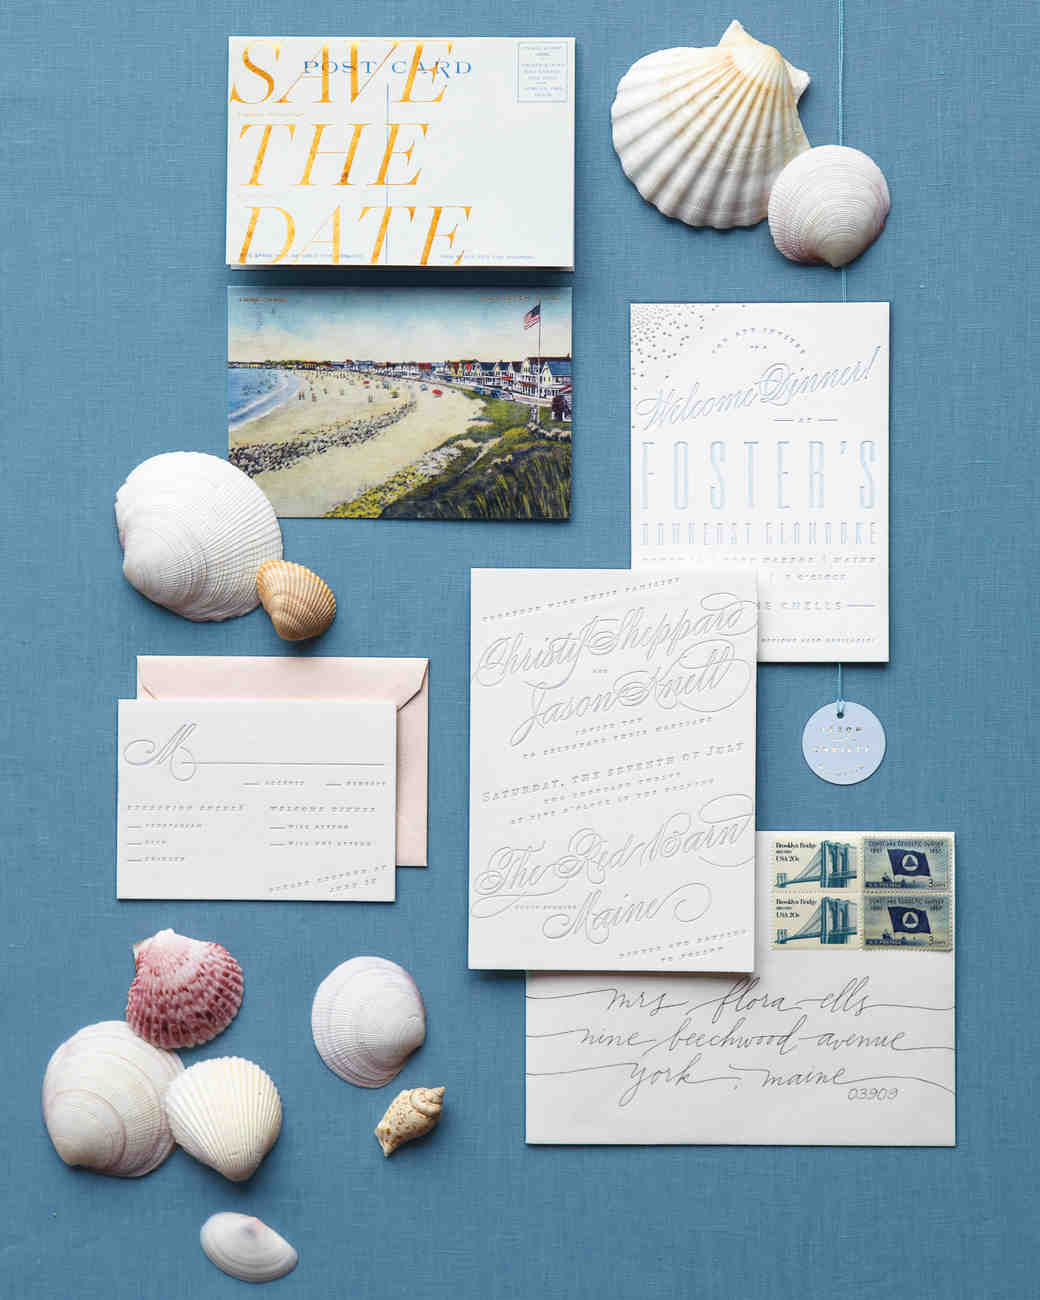 christy-jason-stationery-mwd110052.jpg